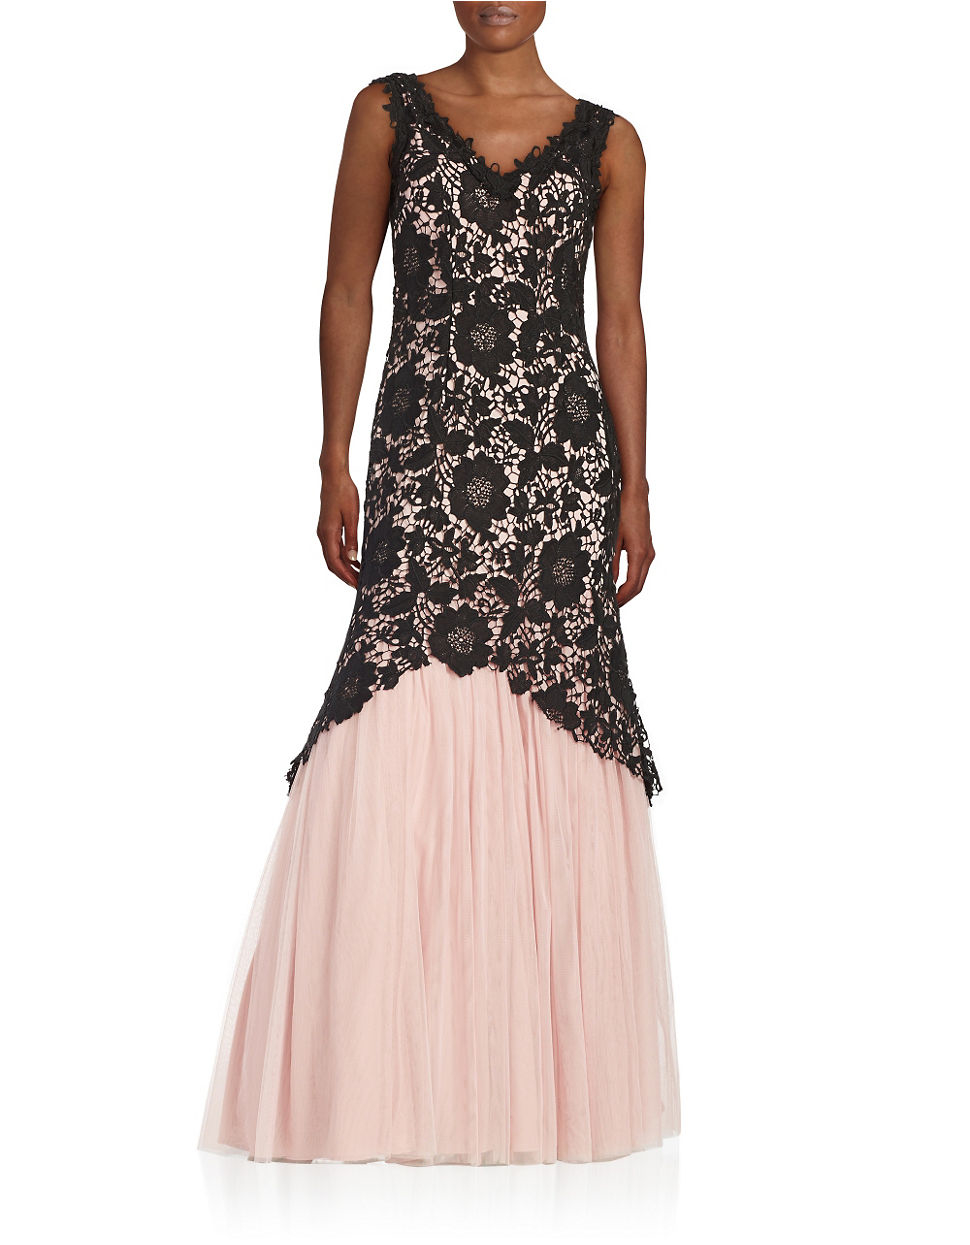 Lyst - Betsy & Adam Lace Trumpet Gown in Black